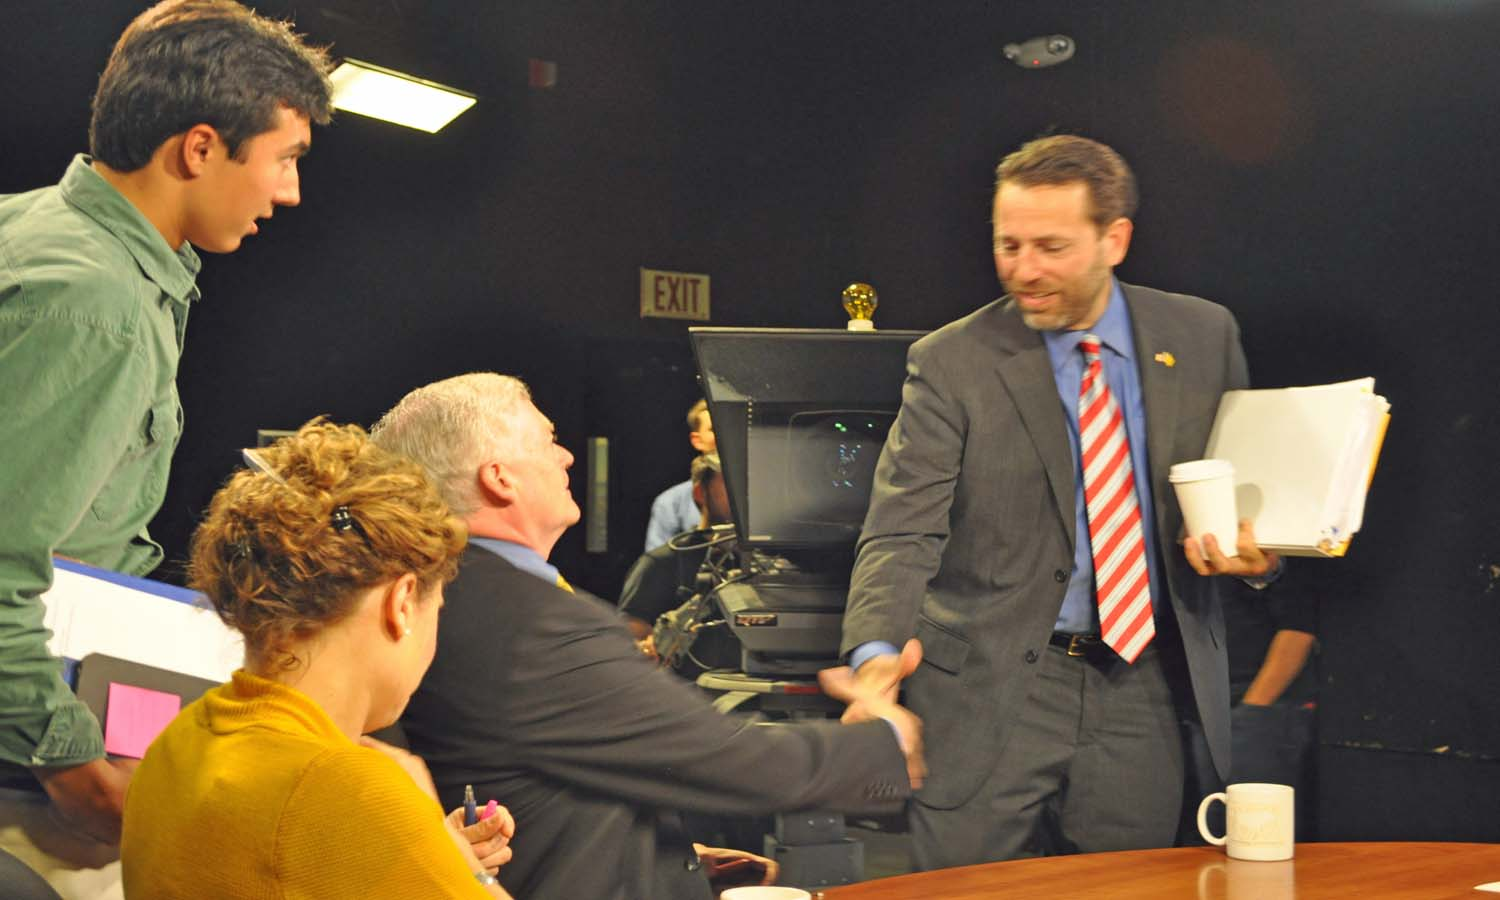 JOE MILLER and MEAD TREADWELL SHAKE HANDS AFTER DEBATE